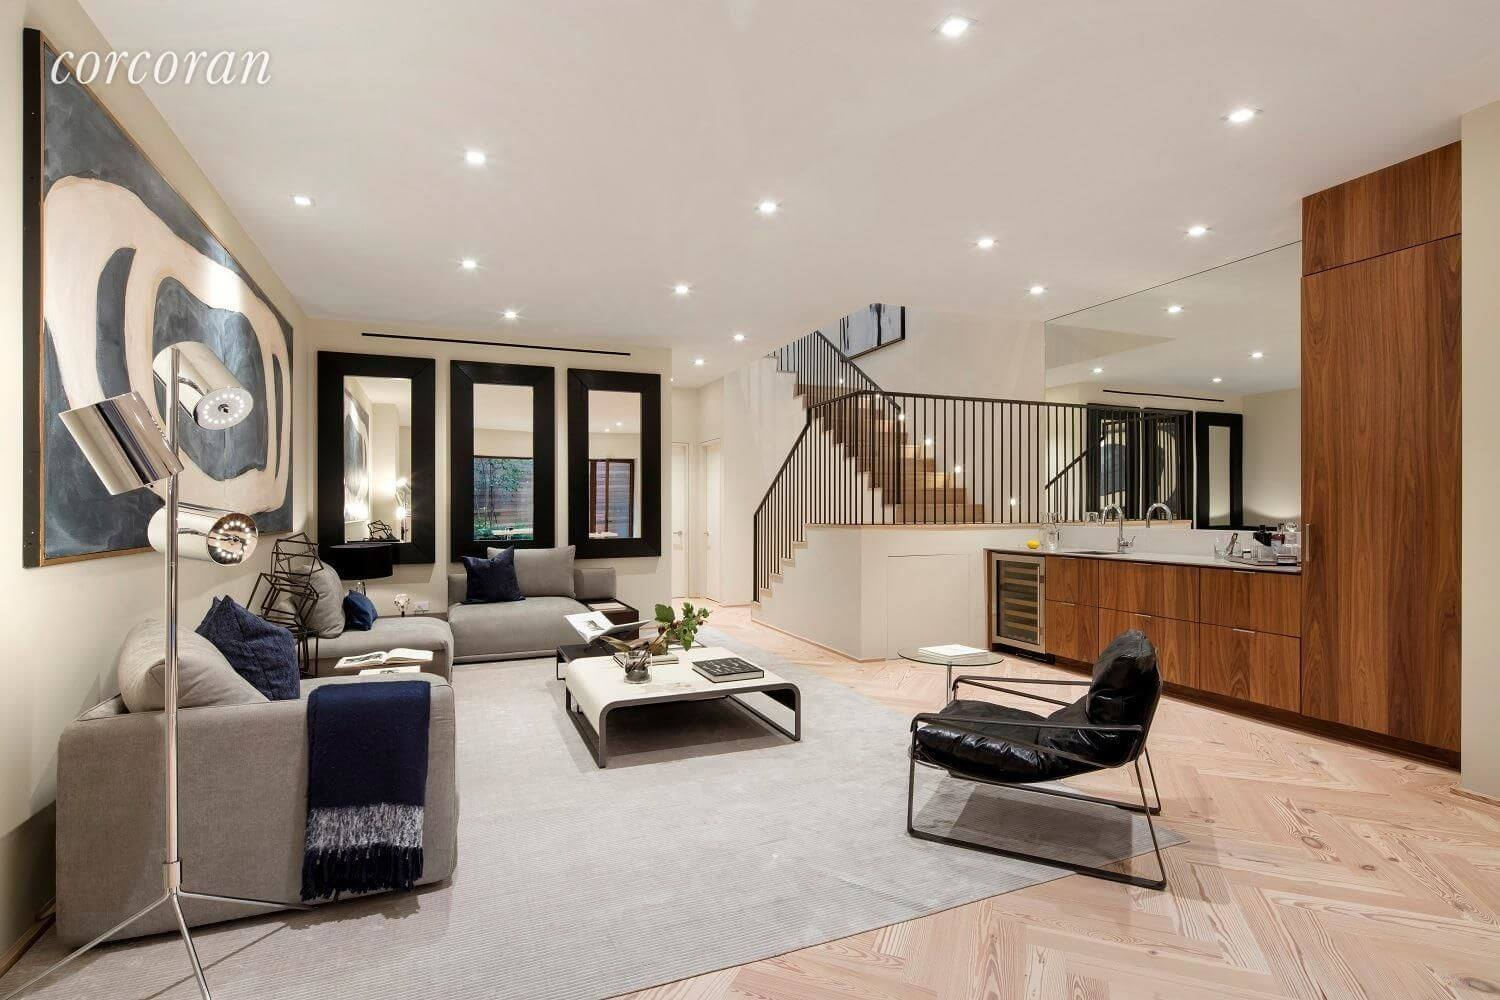 Brooklyn Homes For Sale In Williamsburg At 138 N 1st Street